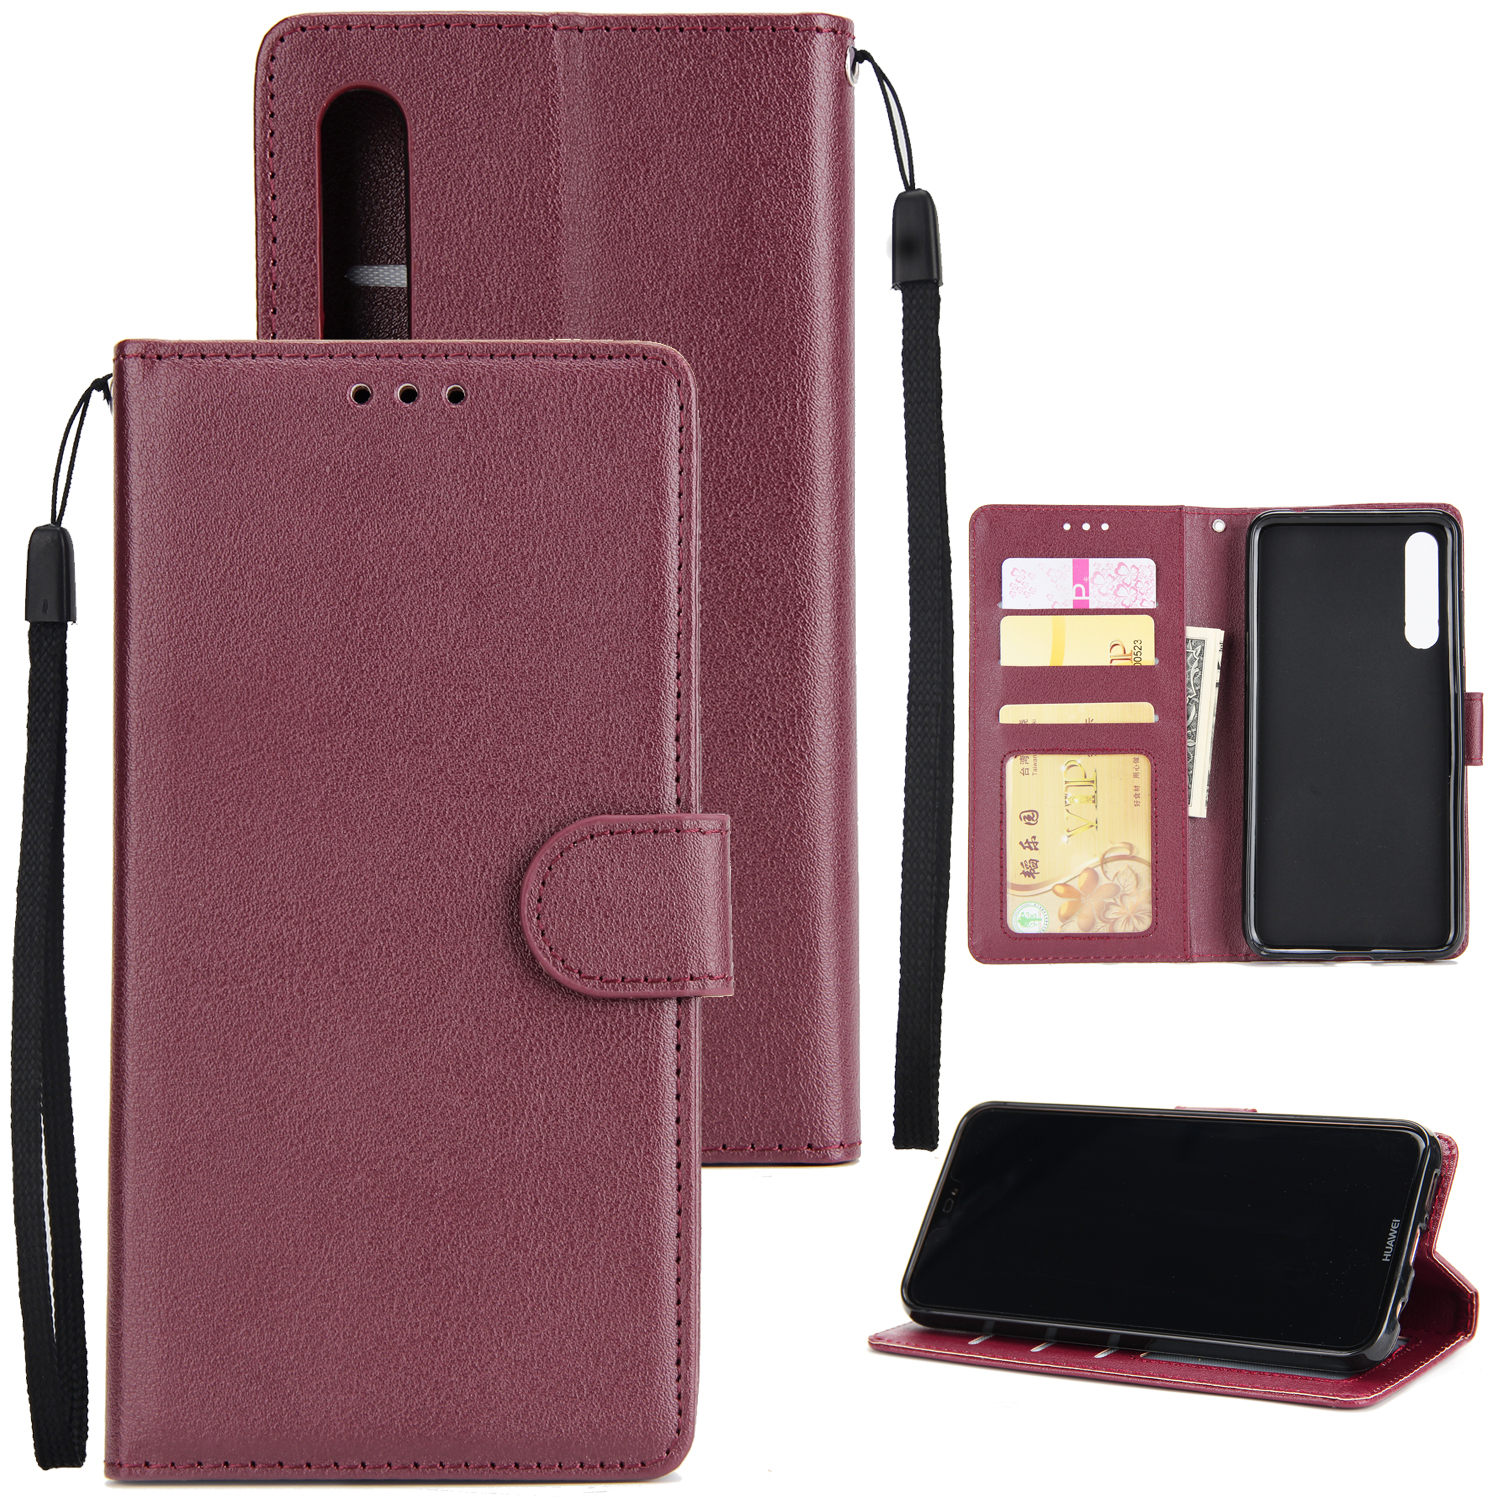 Perfect Fit PU Leather Smart Phone Case Cover with Buckle for Huawei P20 wine Red